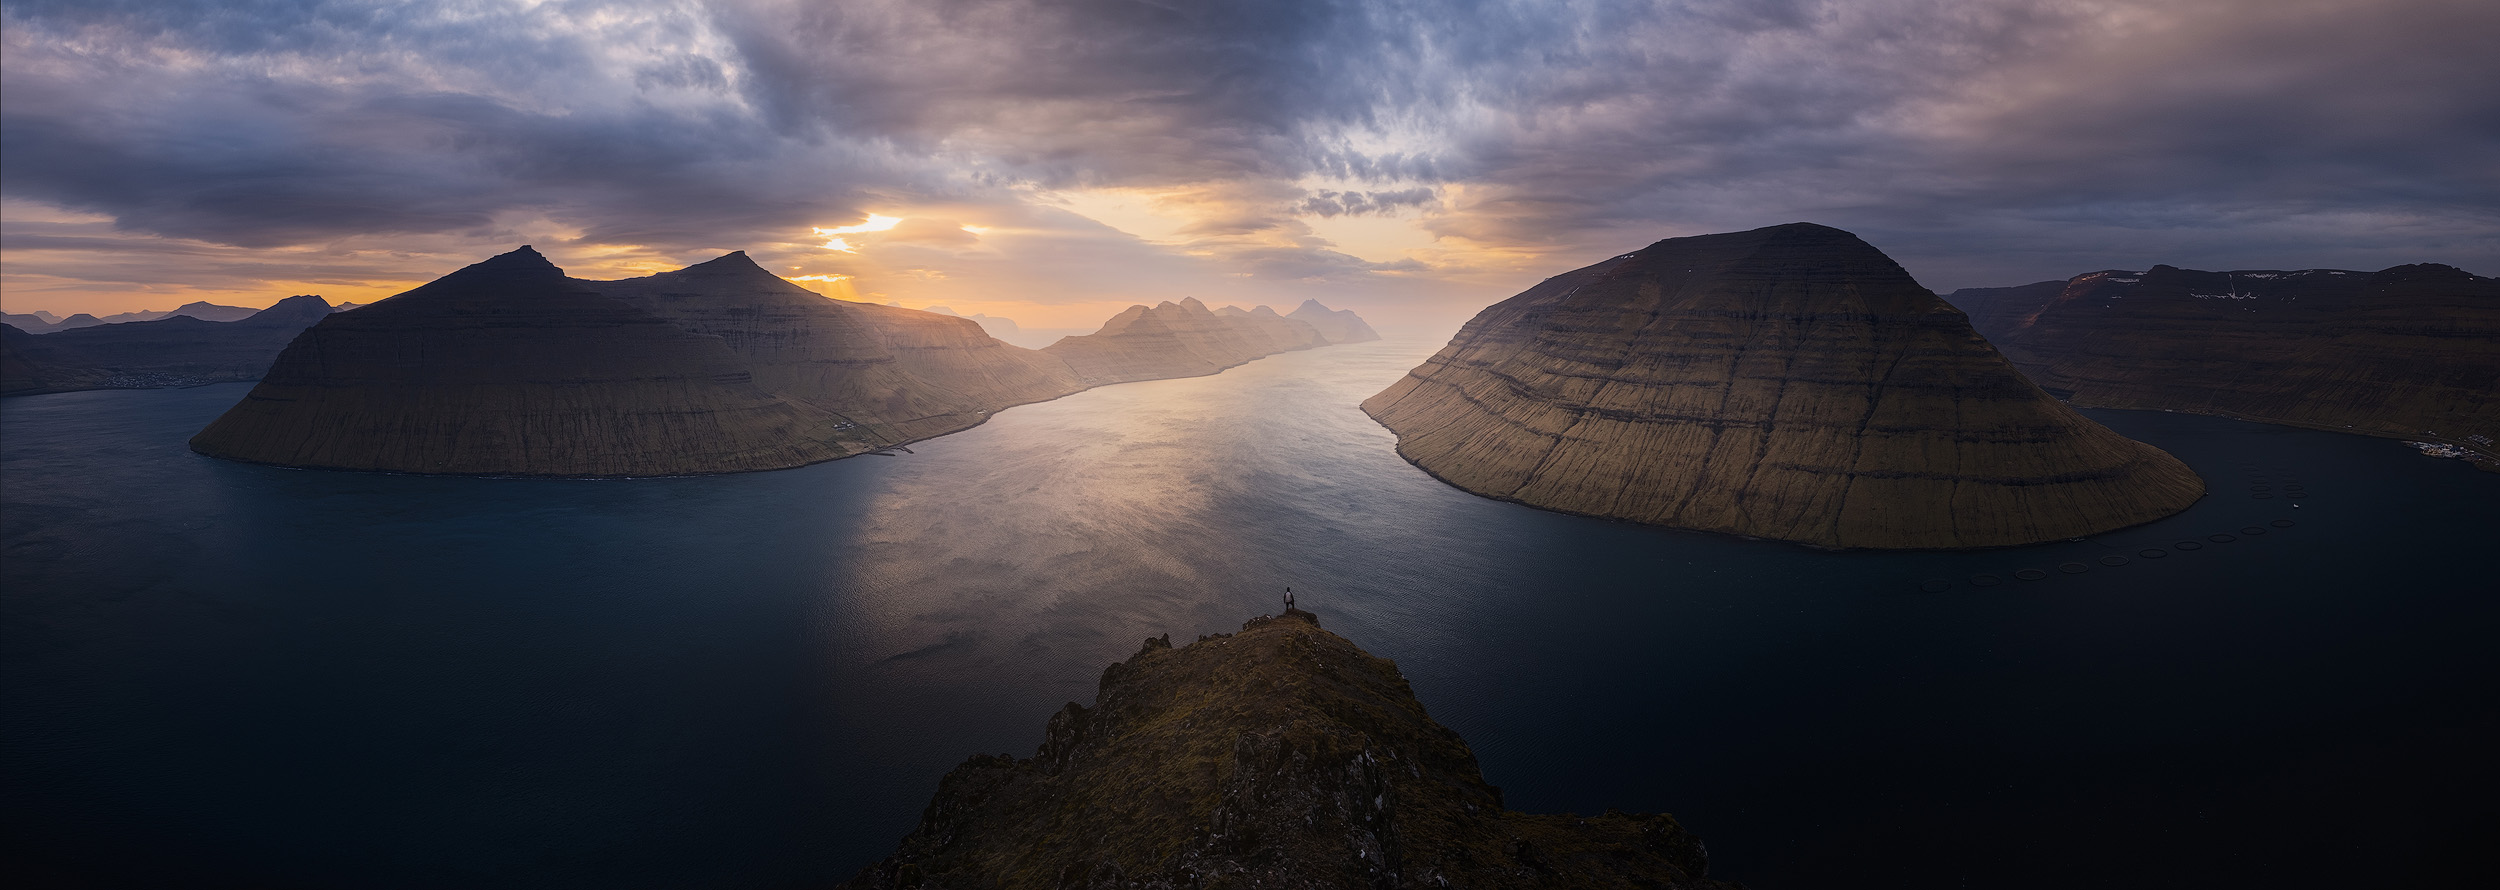 Klakkur Panorama   The islands of Kalsoy and Kunoy seen from the peak of Klakkur above the town of Klaksvík at sunset.